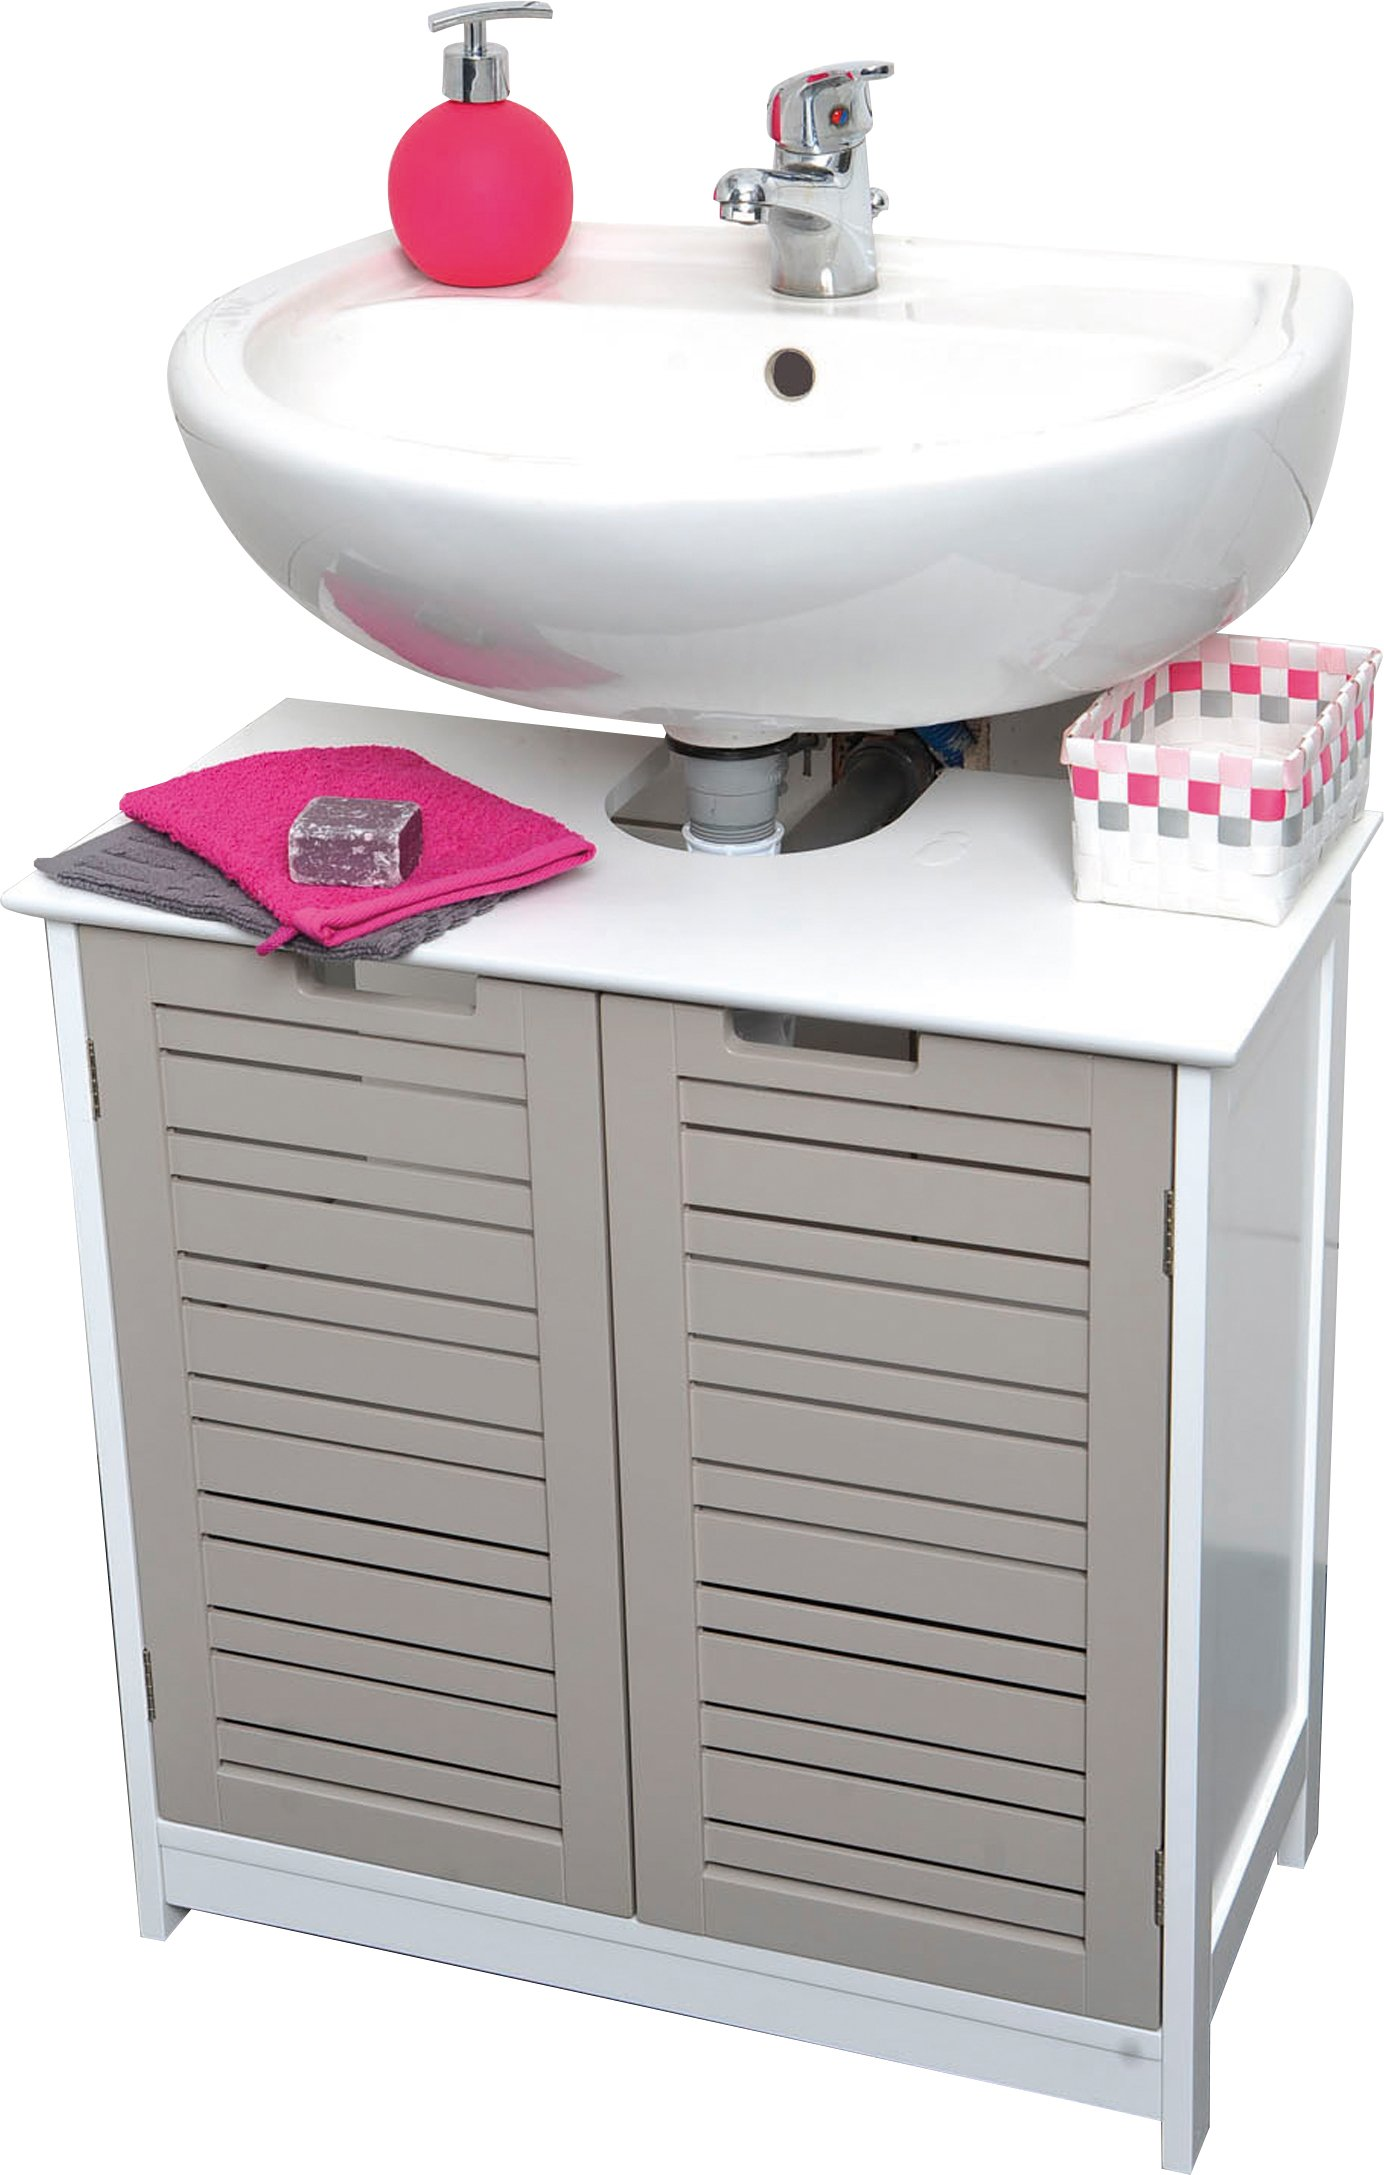 EVIDECO 9900302 Free Standing Non Pedestal Under Sink Vanity Cabinet Bath Storage So Romantic Taupe by EVIDECO (Image #1)